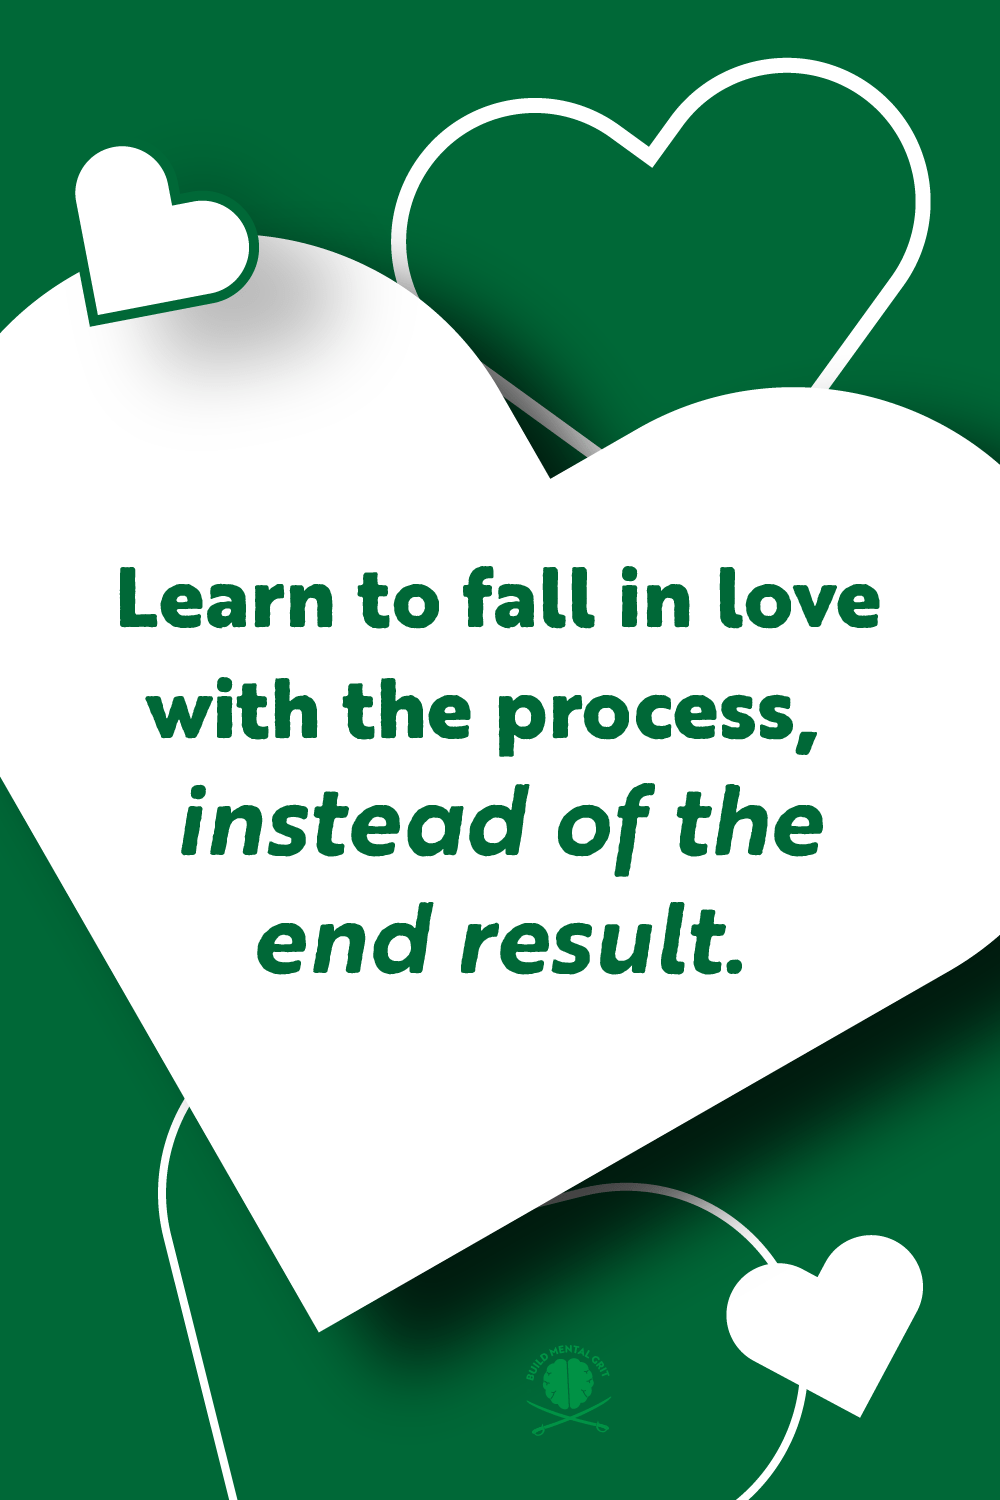 White-hearts-with-green-text-on-loving-the-process-at-age-30